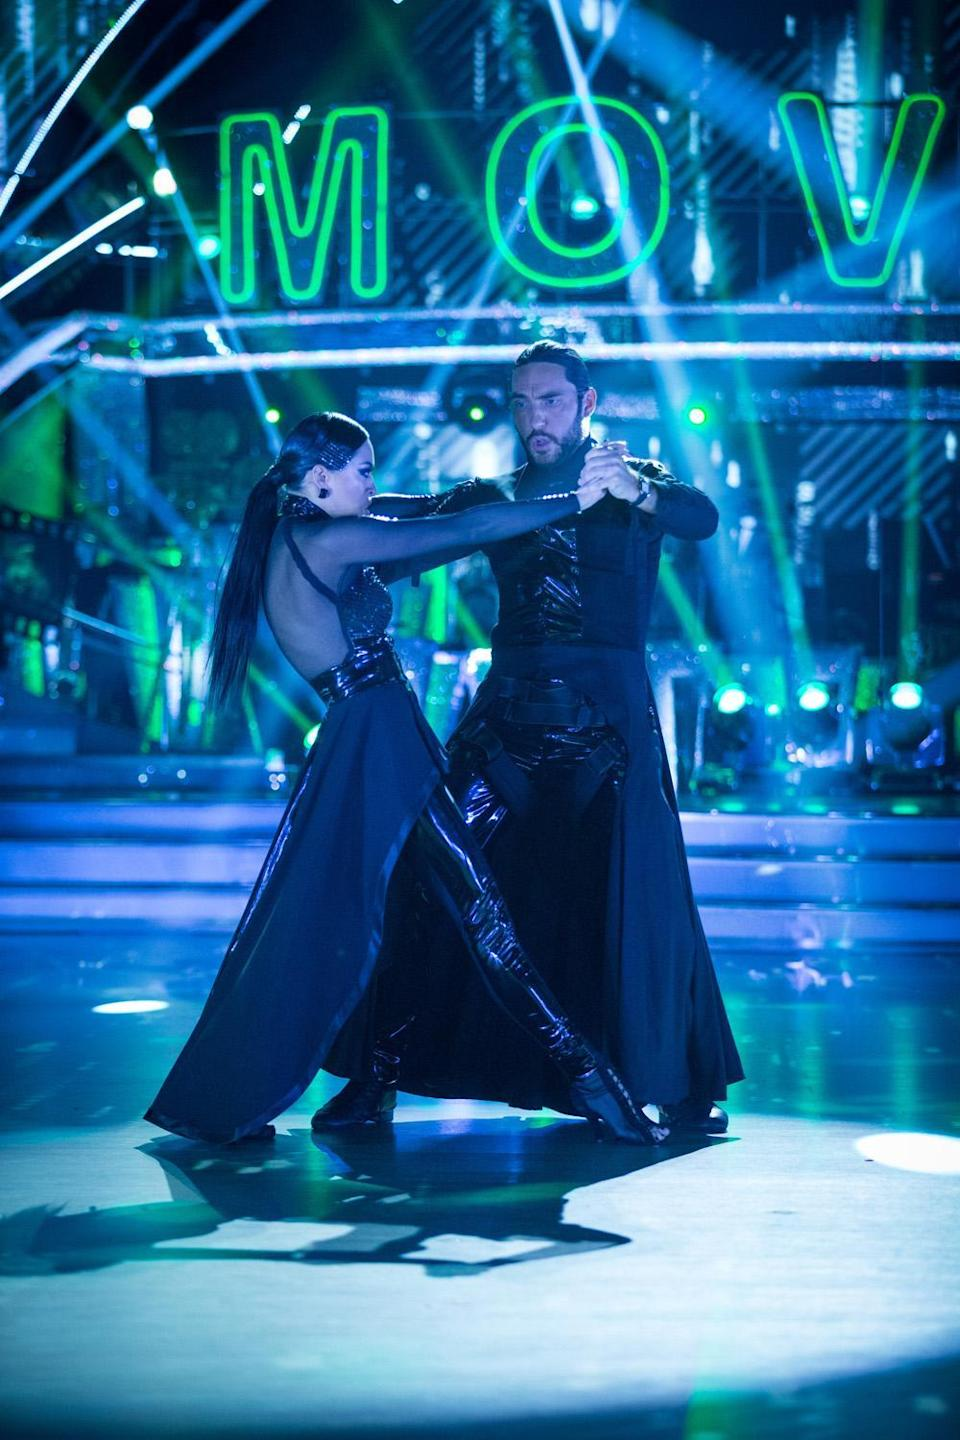 The pair are partners on Strictly Come Dancing (BBC/Guy Levy)